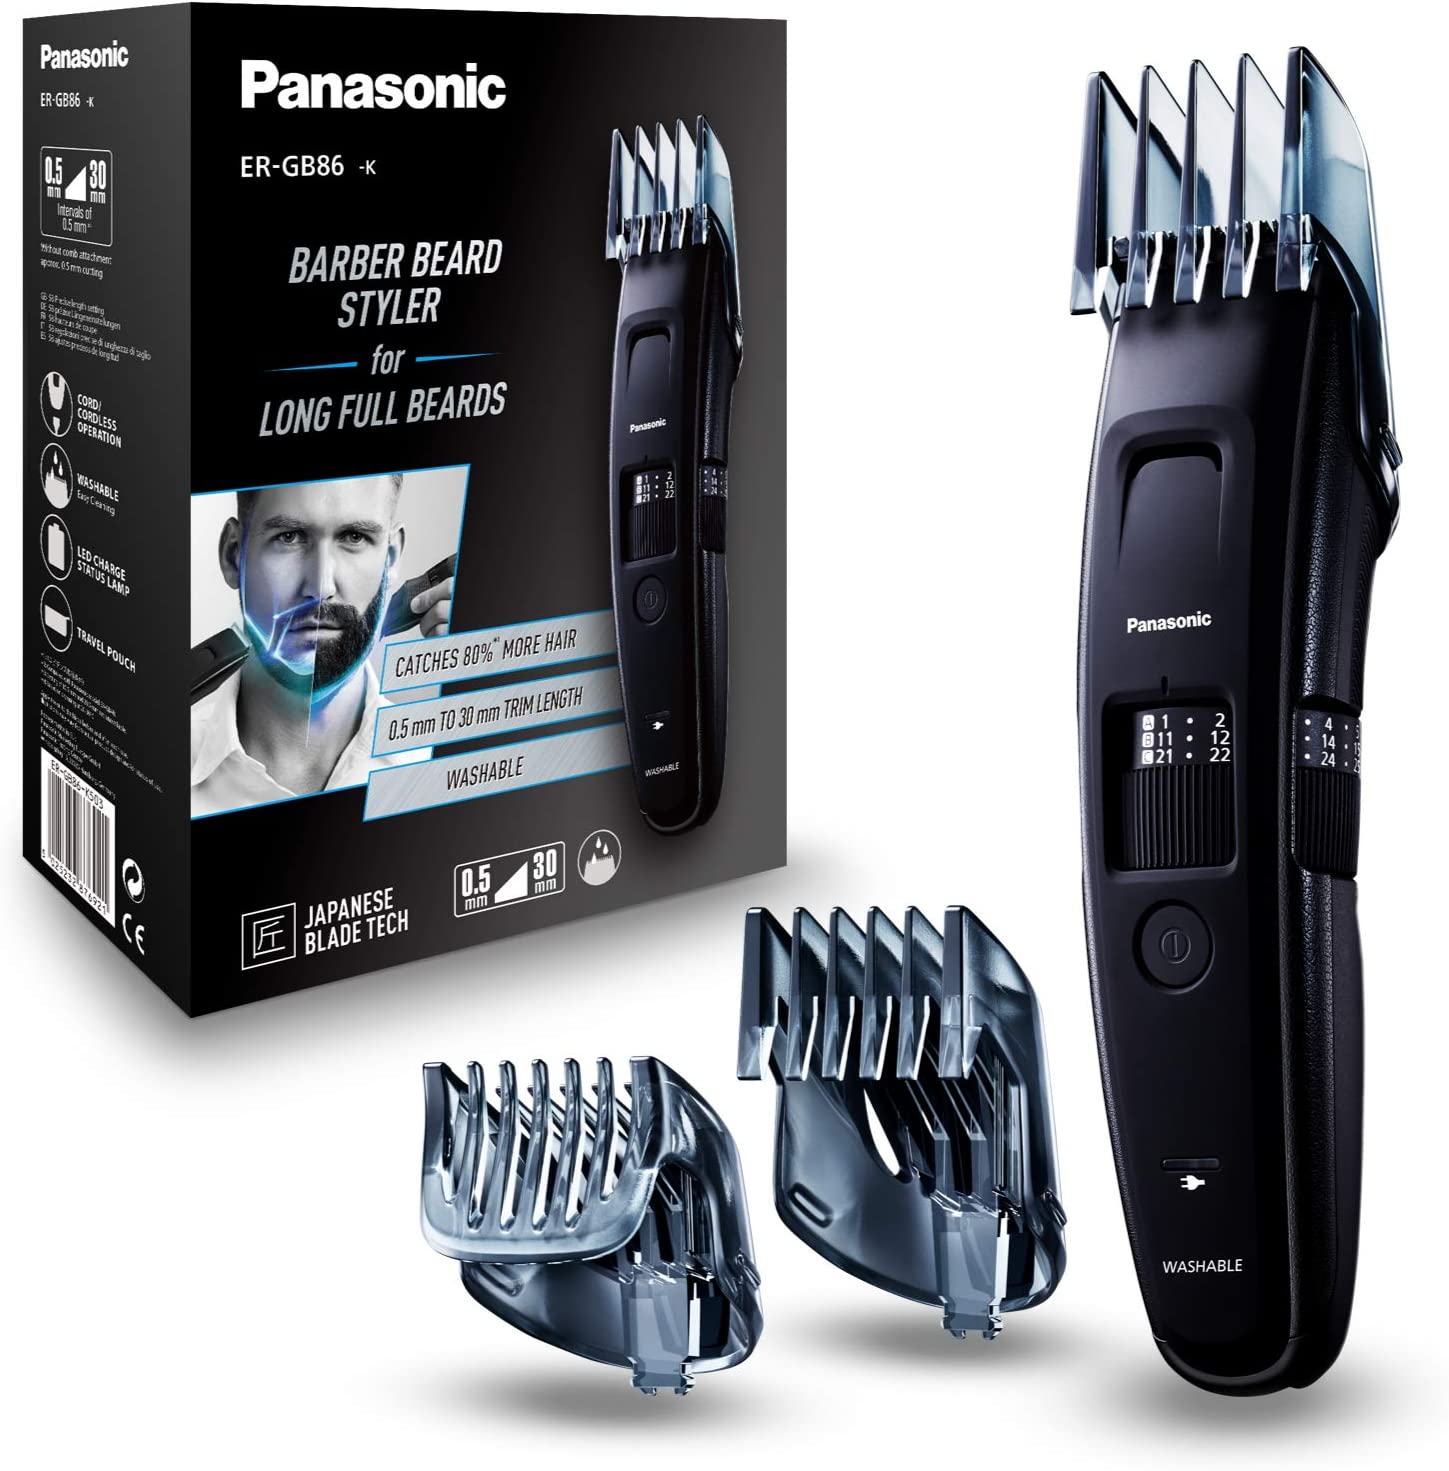 Panasonic ER-GB86-K503 - Recortadora Ideal Barbas Largas con Peine ...